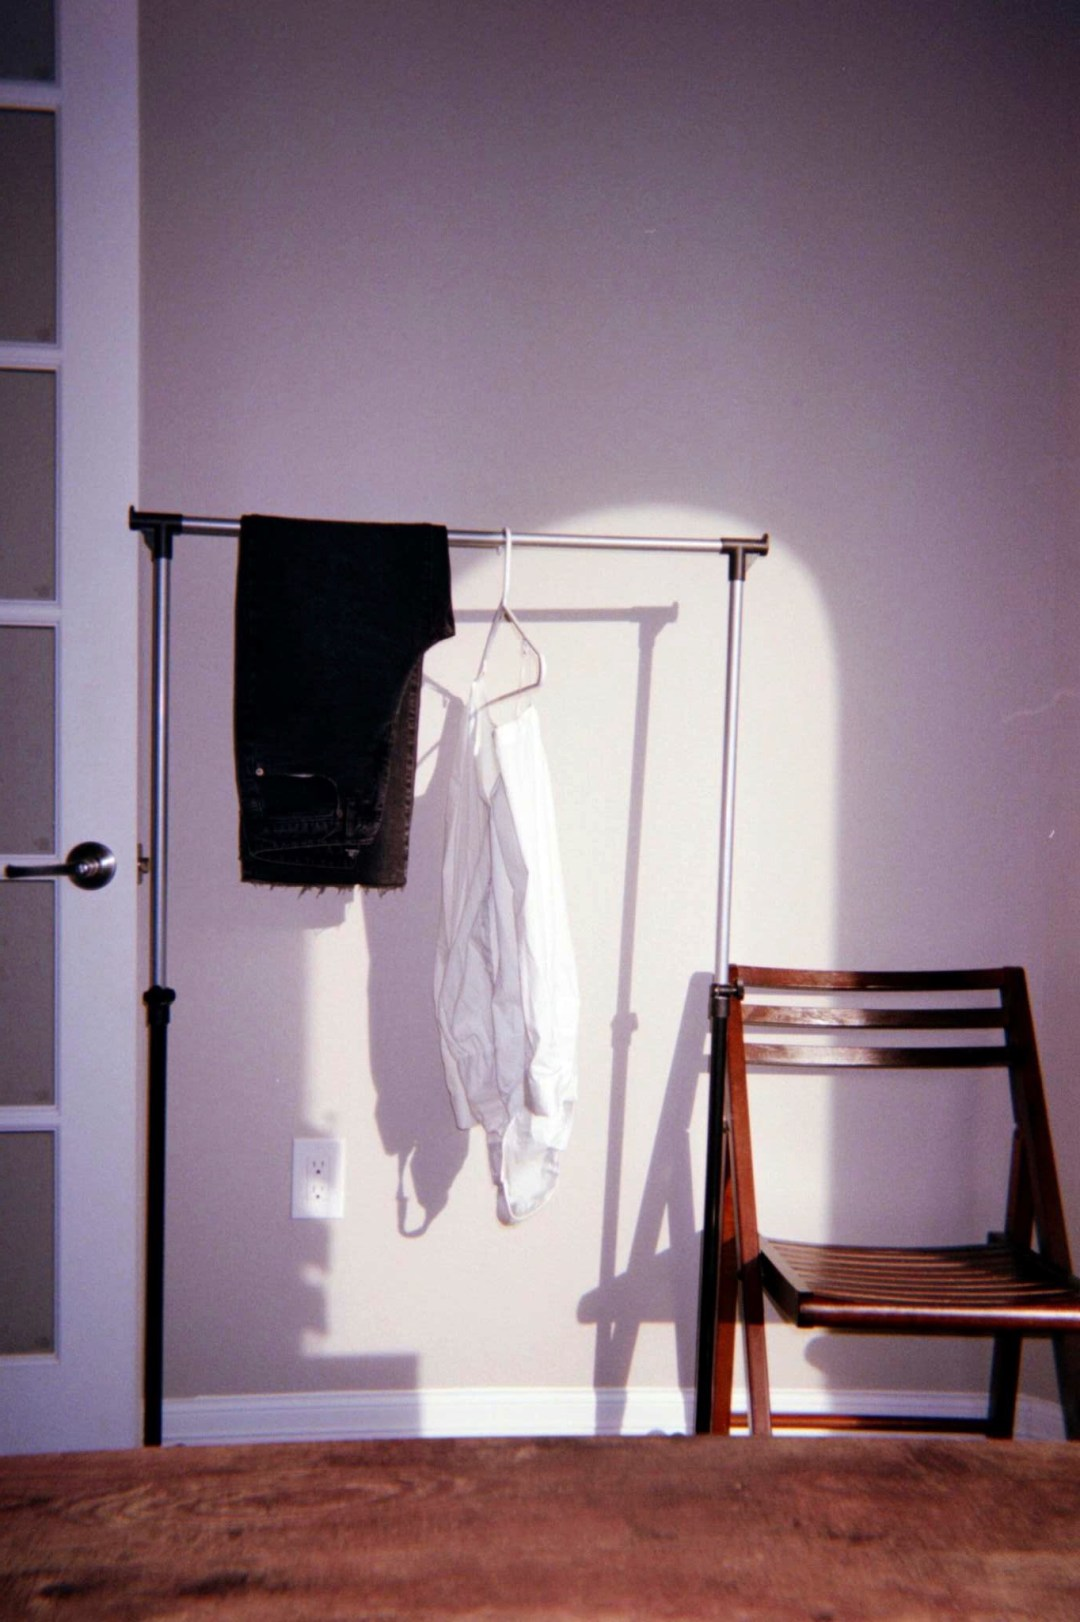 disposable film camera, fil photography, fujifilm, unedited morning light, no filter